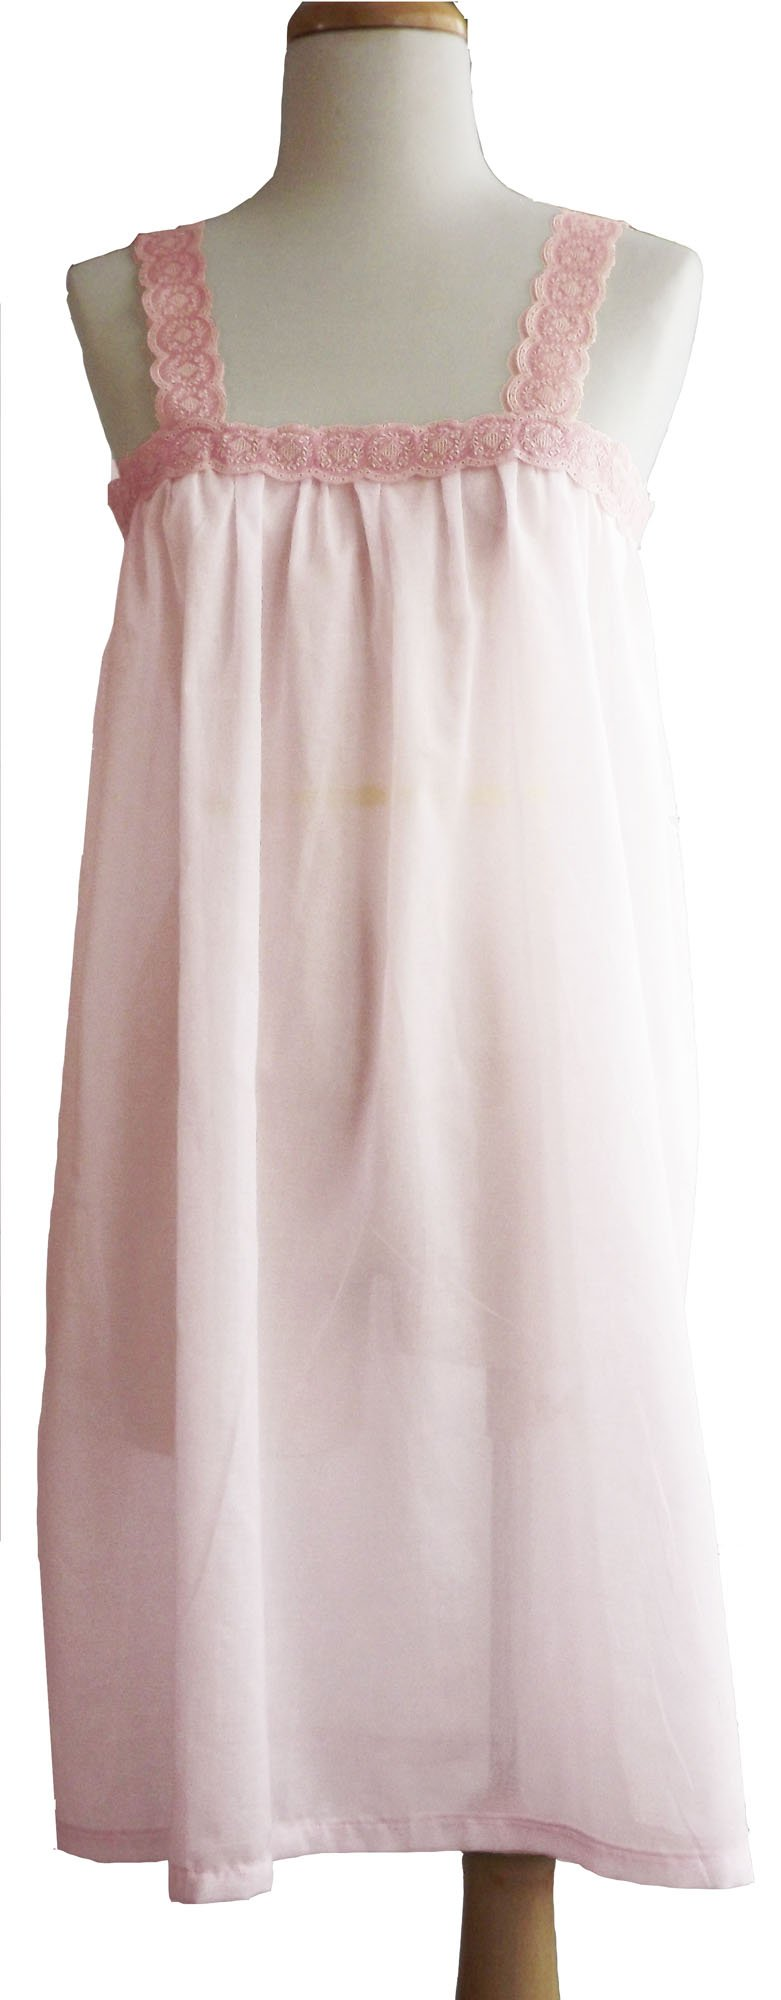 Pampour Bespoke French Embroidered Cotton Nightgown From Couture (Lt Pink Rose, Small) by Pampour (Image #1)